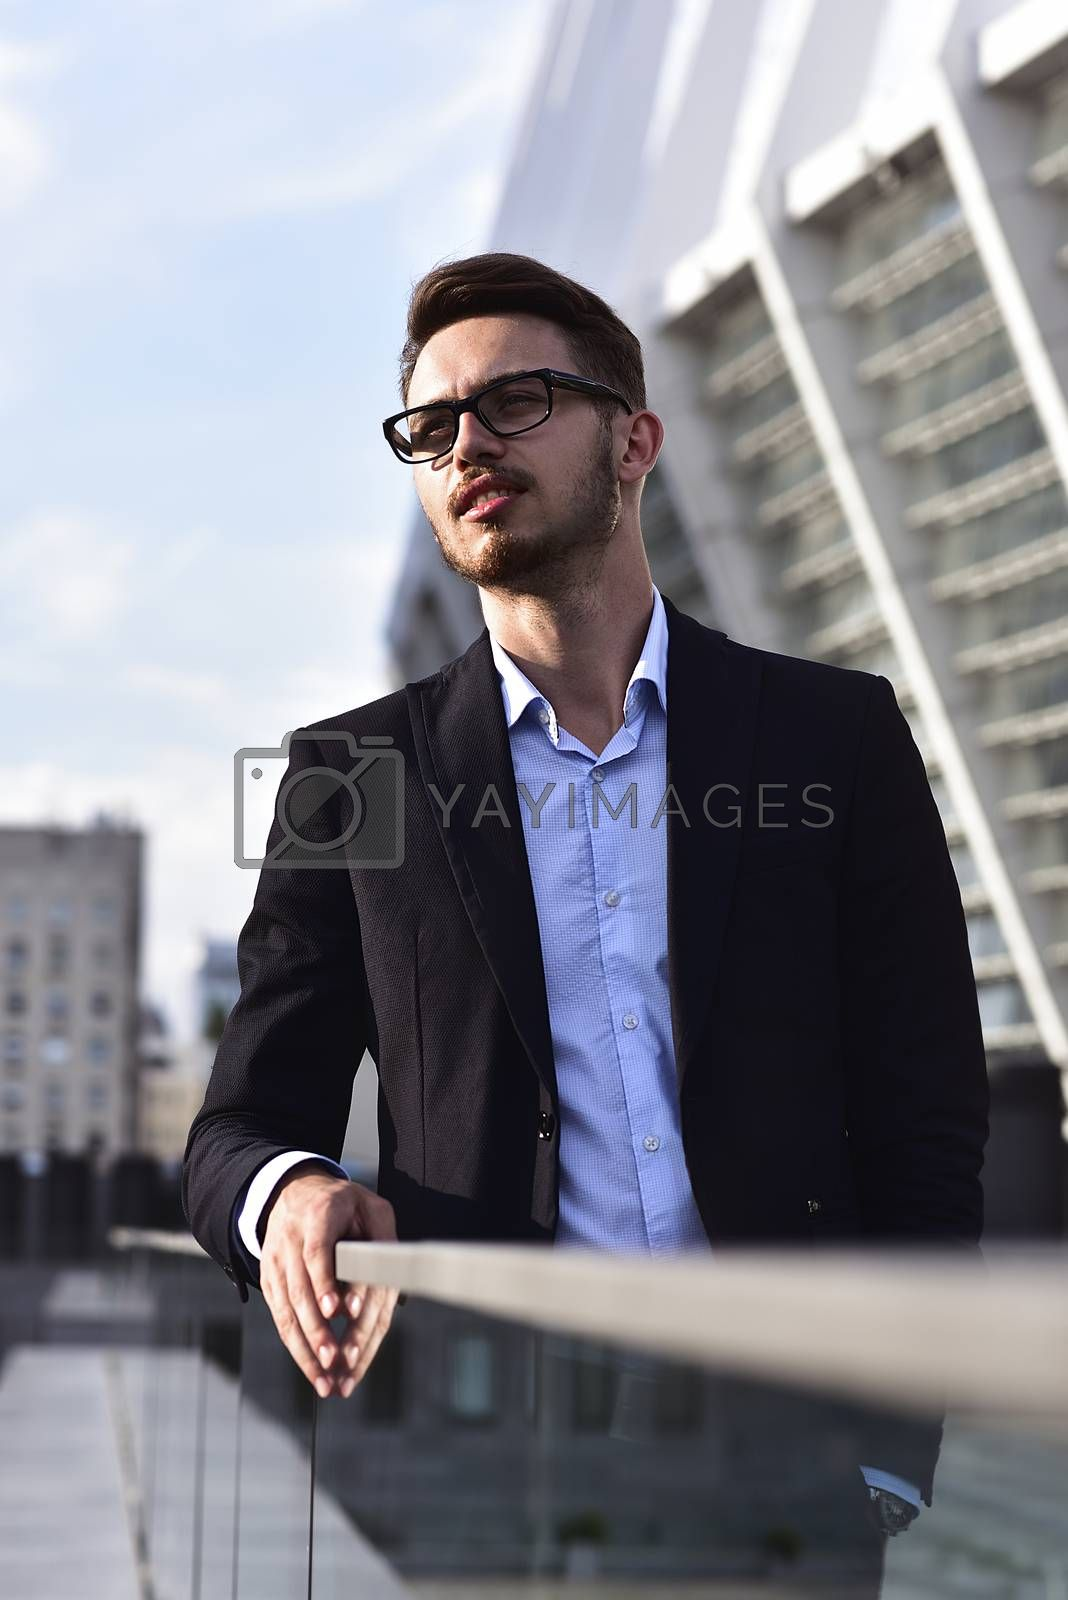 Modern businessman. Confident young man in full suit standing outdoors with cityscape in the background